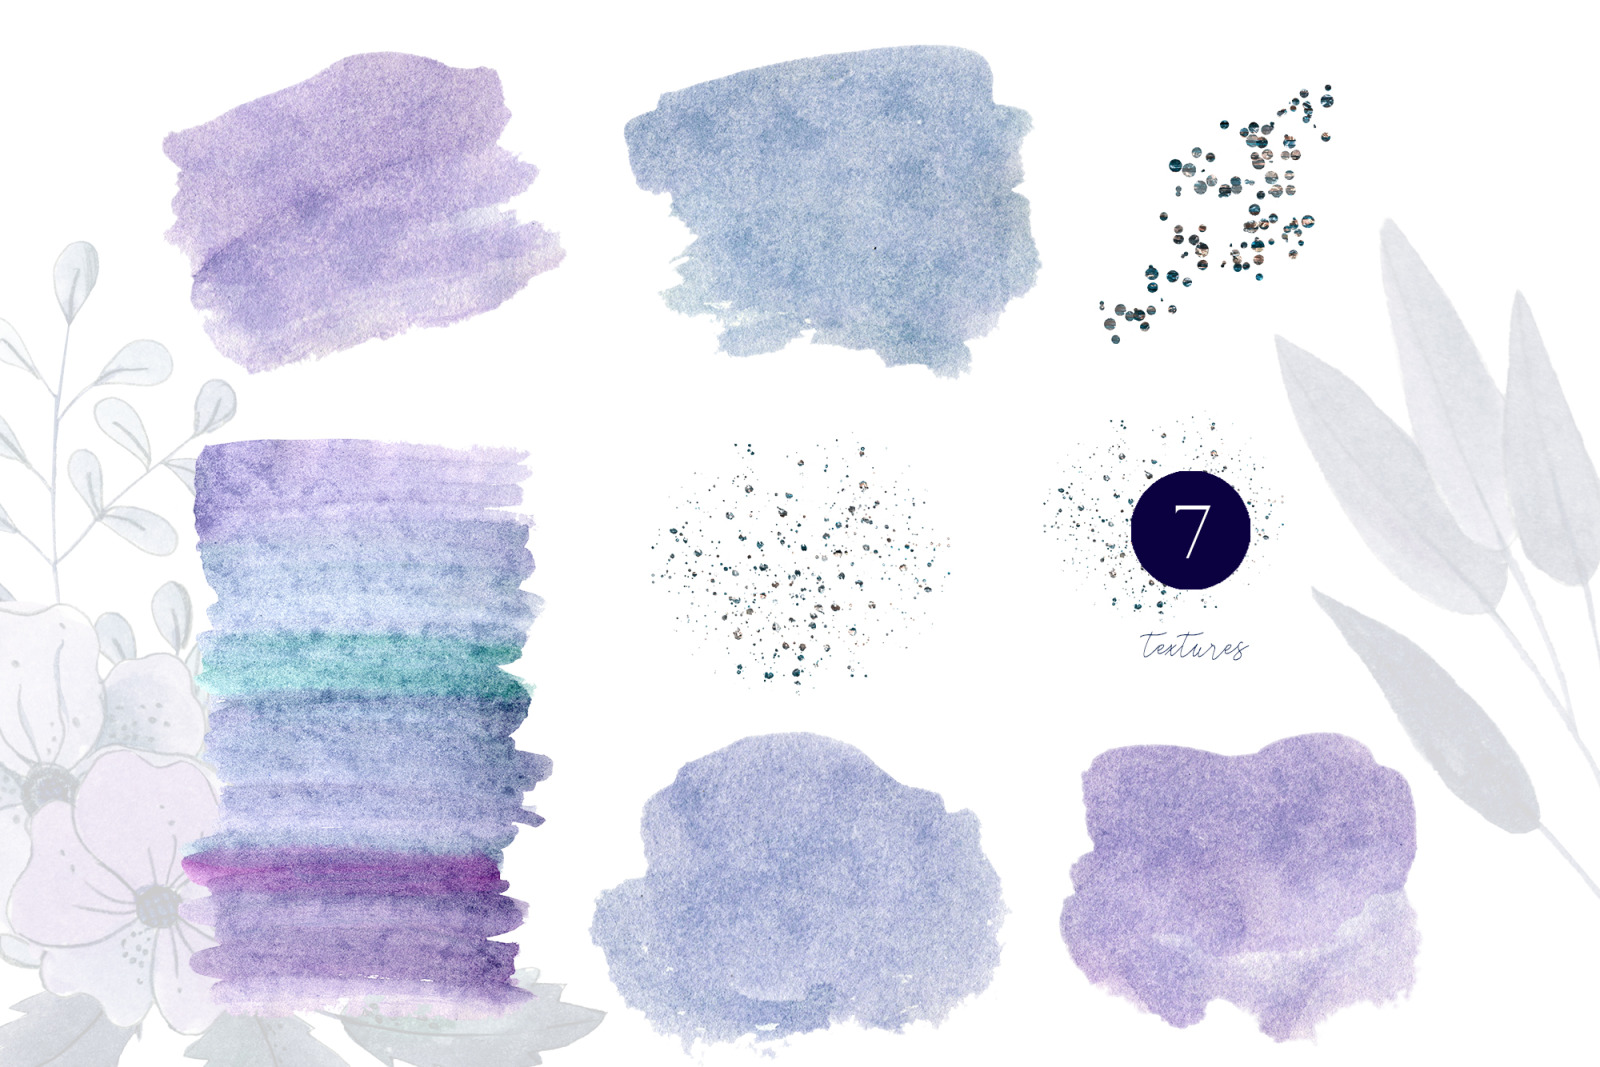 Watercolor dusty blue floral clipart. Blue floral wedding frame clipart. Navy blue wedding invites